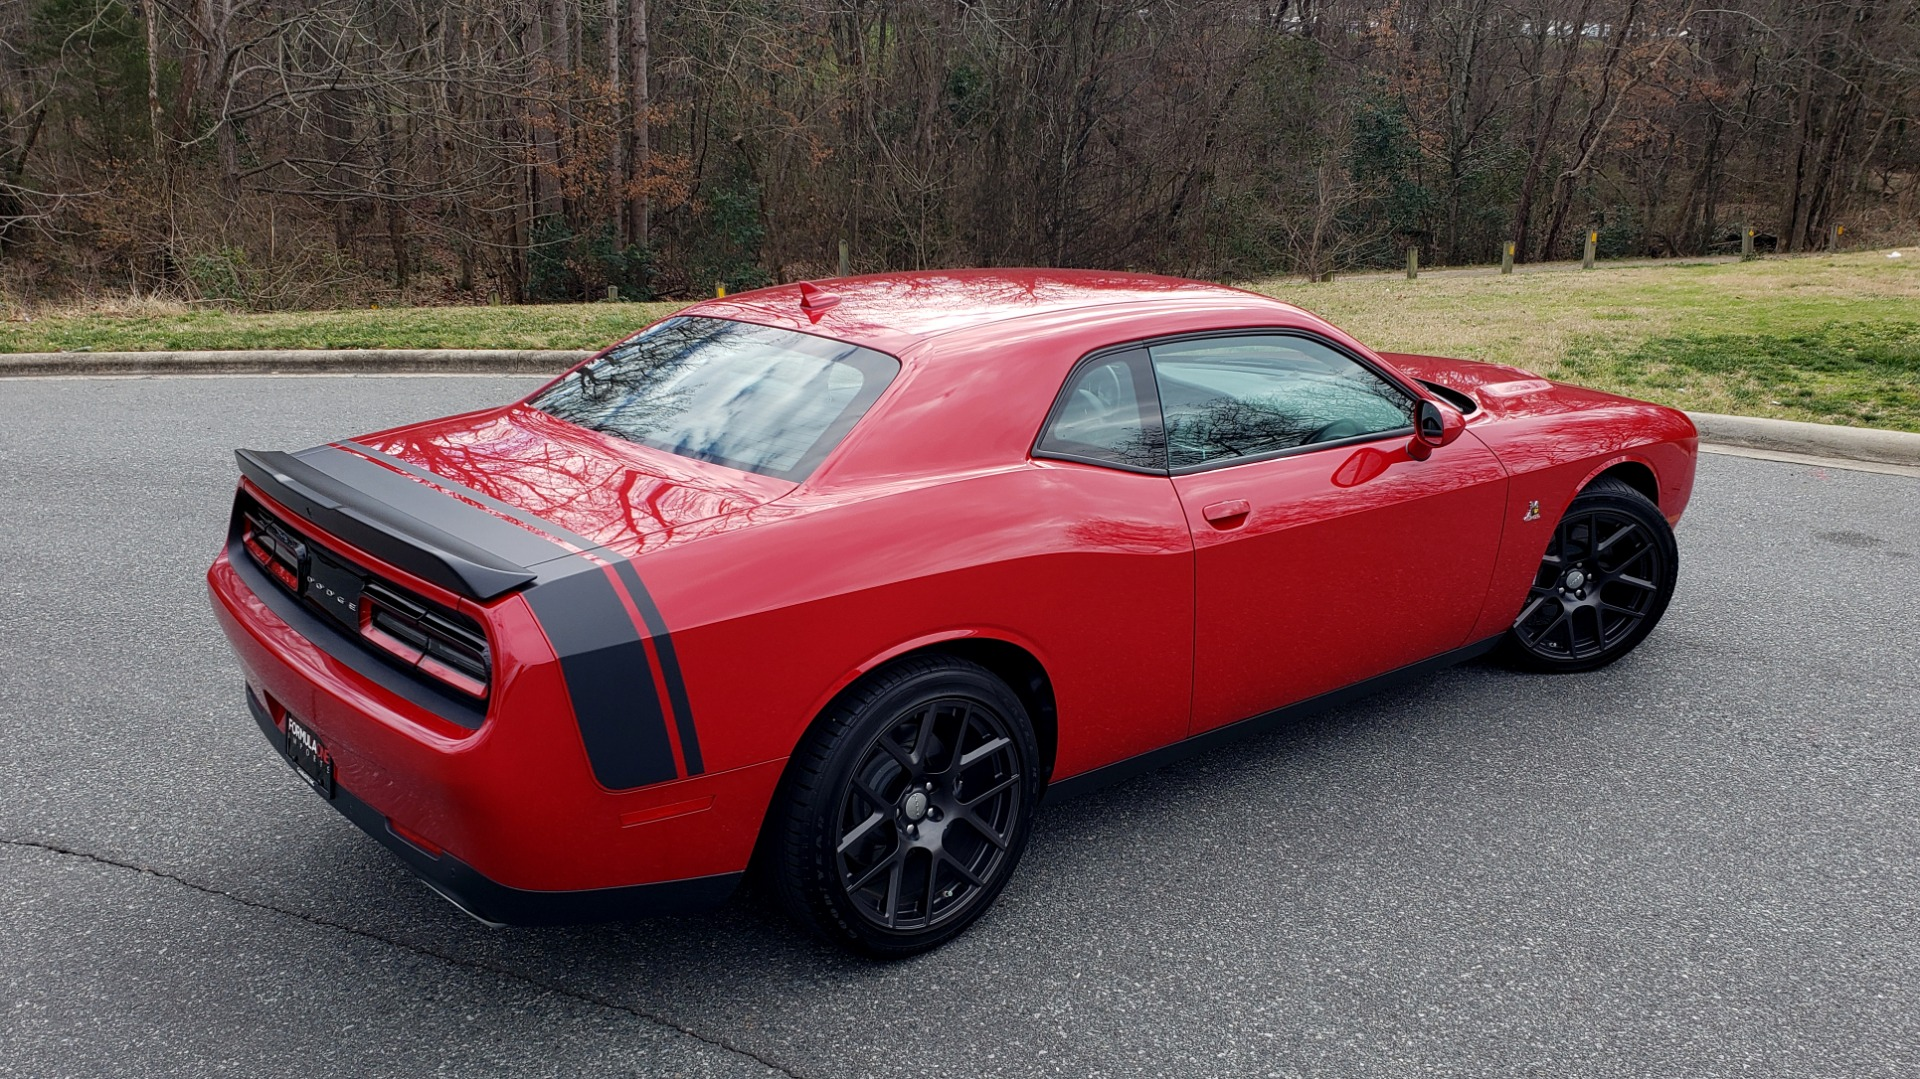 Used 2016 Dodge CHALLENGER R/T SCAT PACK / TECHNOLOGY / ALPINE / 6-SPEED MAN for sale Sold at Formula Imports in Charlotte NC 28227 7